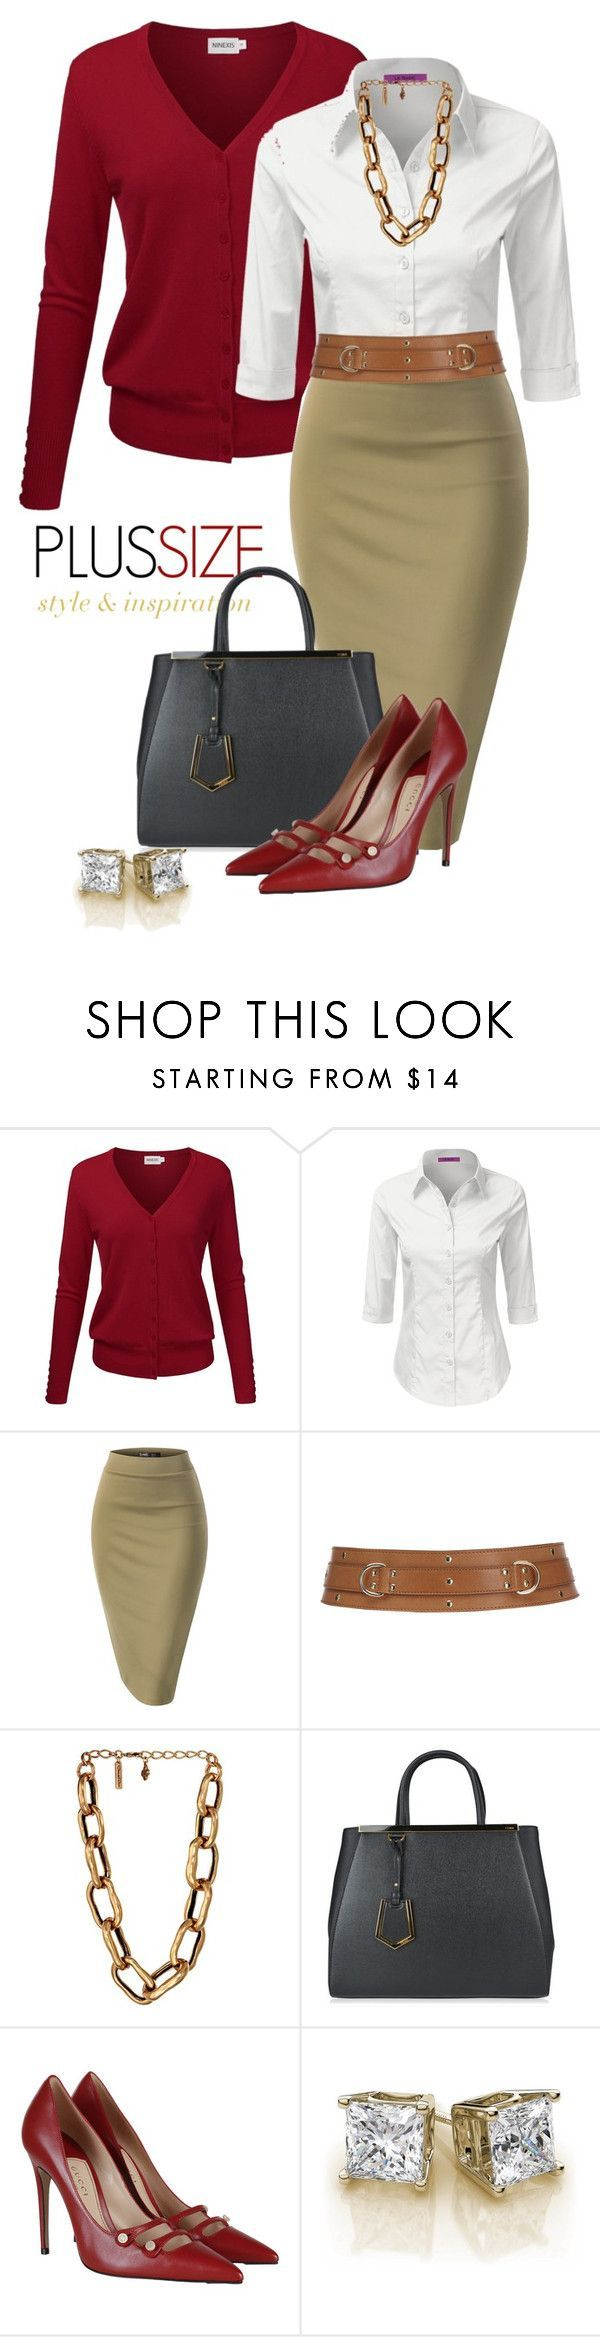 """Work Outfit -- #Plus Size"" by kimberlyn303 on Polyvore featuring Belstaff, Oscar de la Renta, Fendi and Gucci"